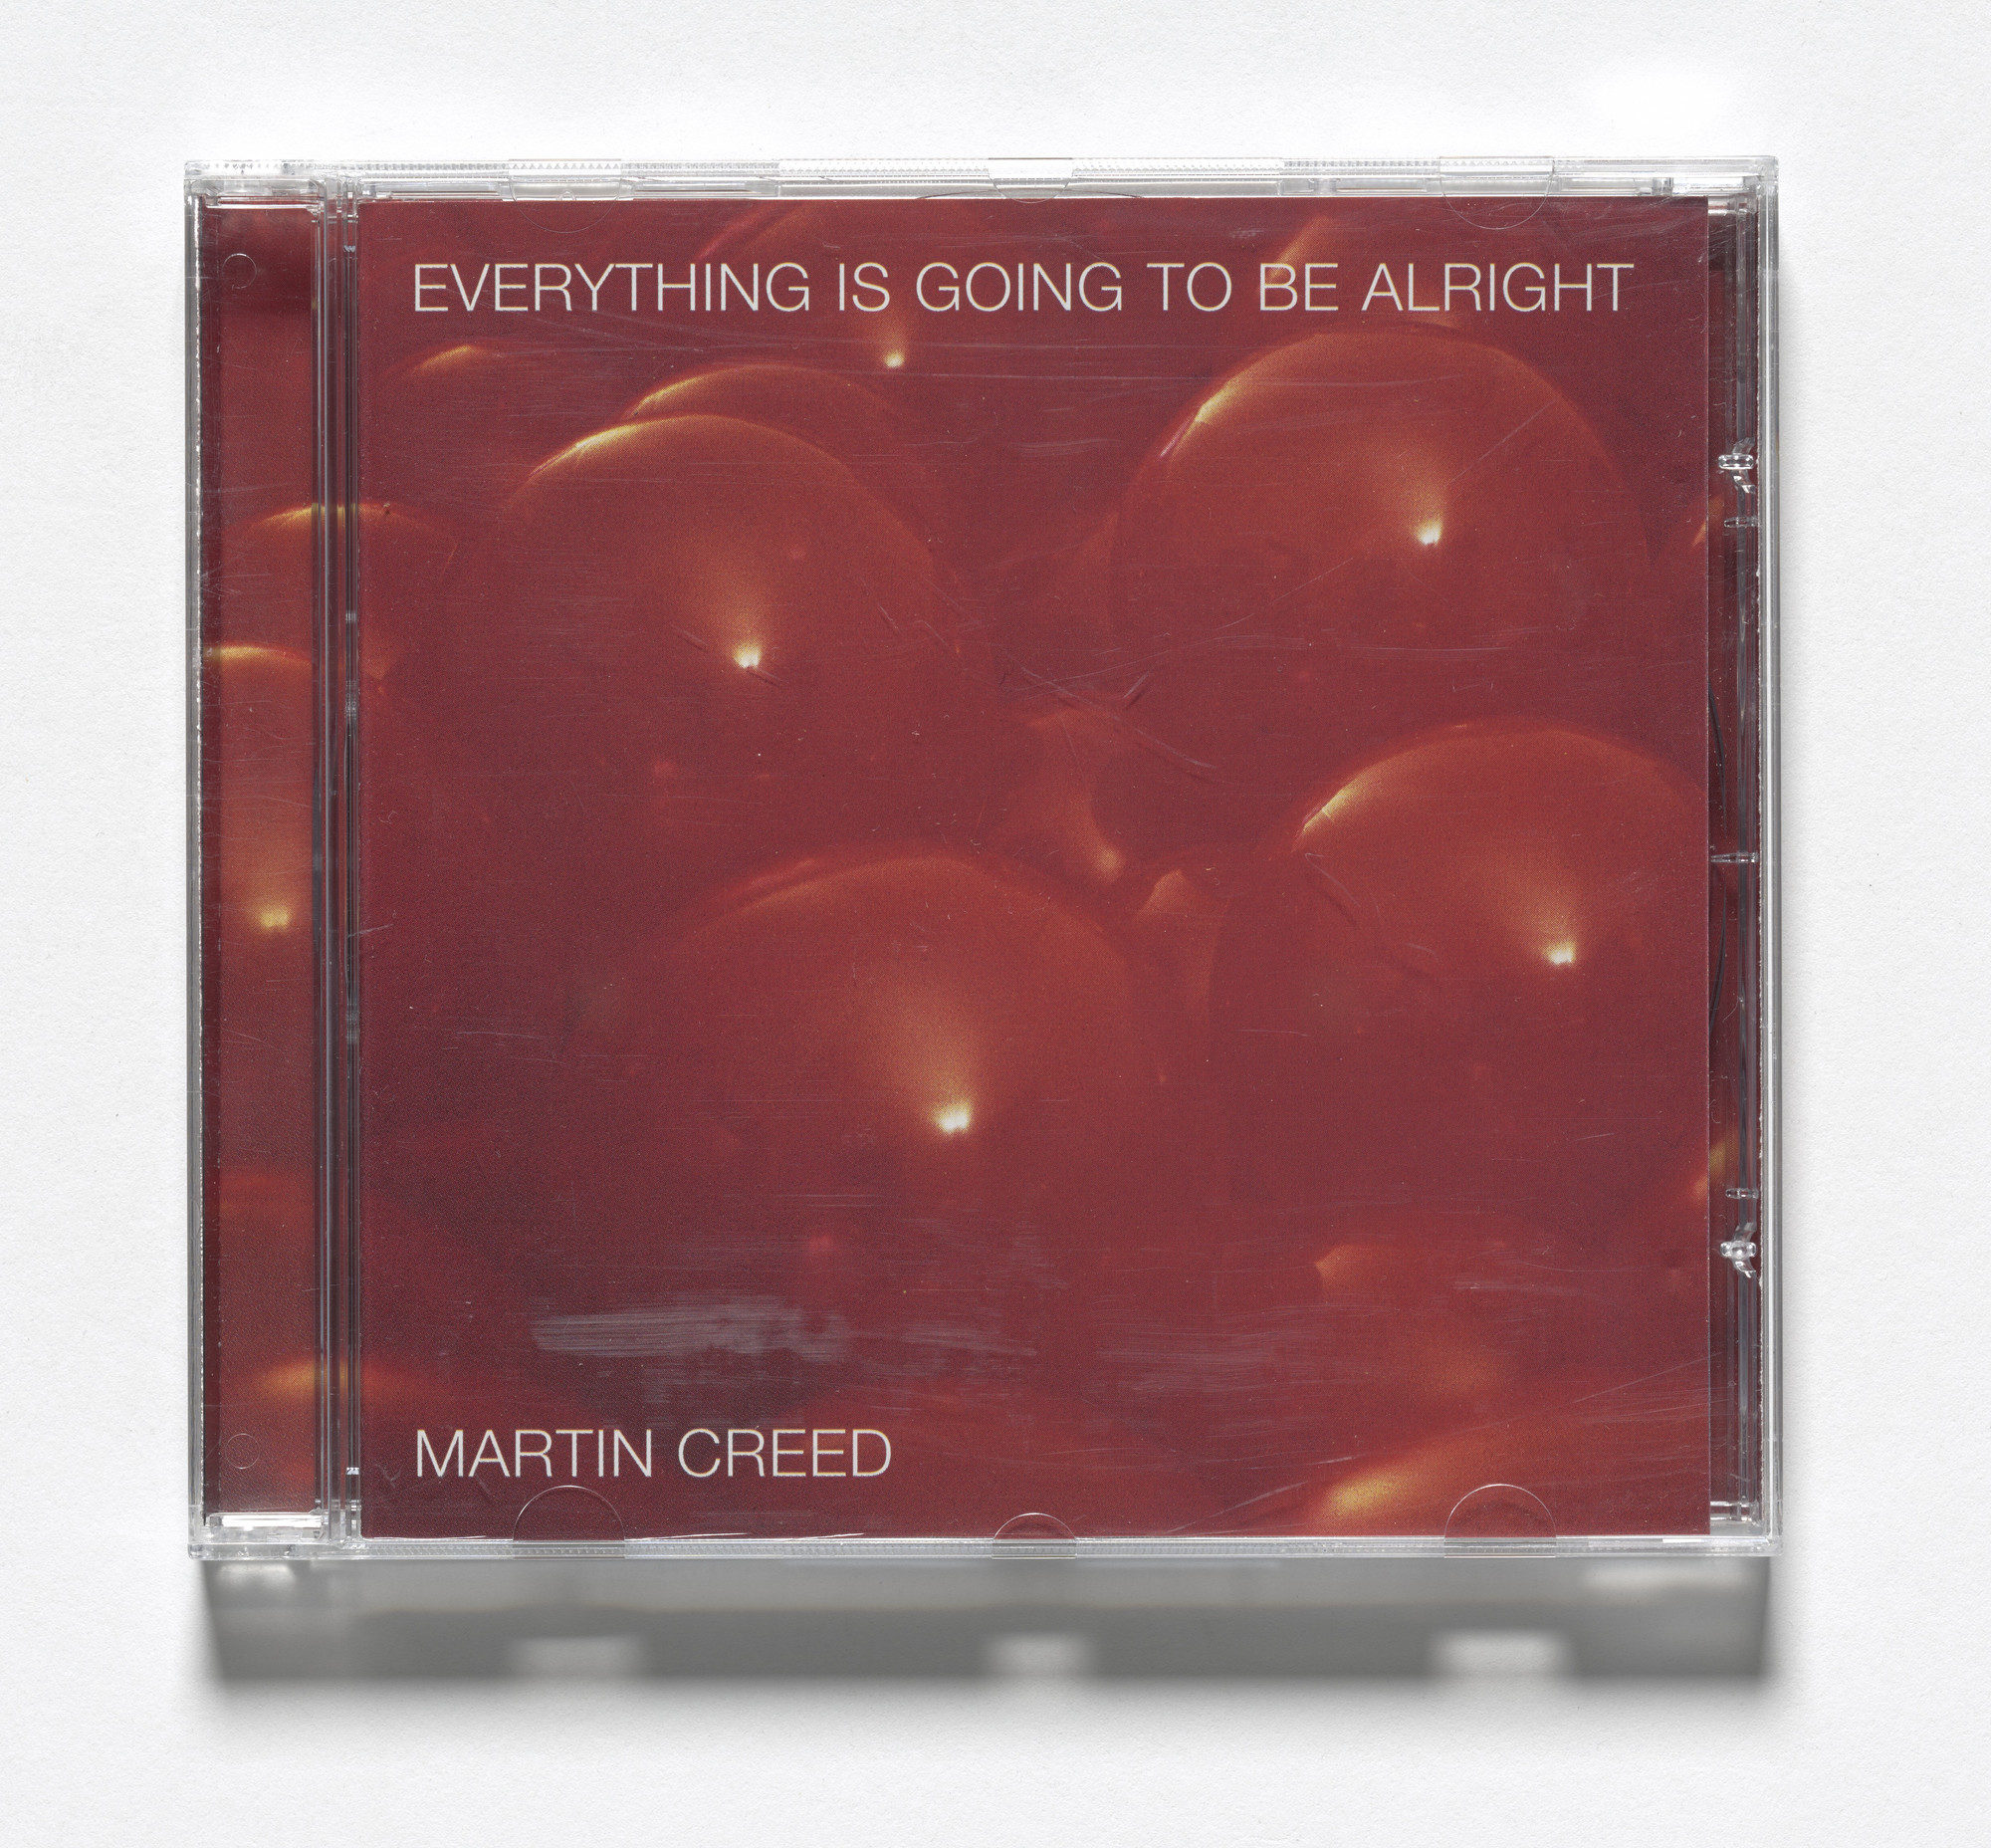 Martin Creed. Everything is Going to Be Alright. 1999